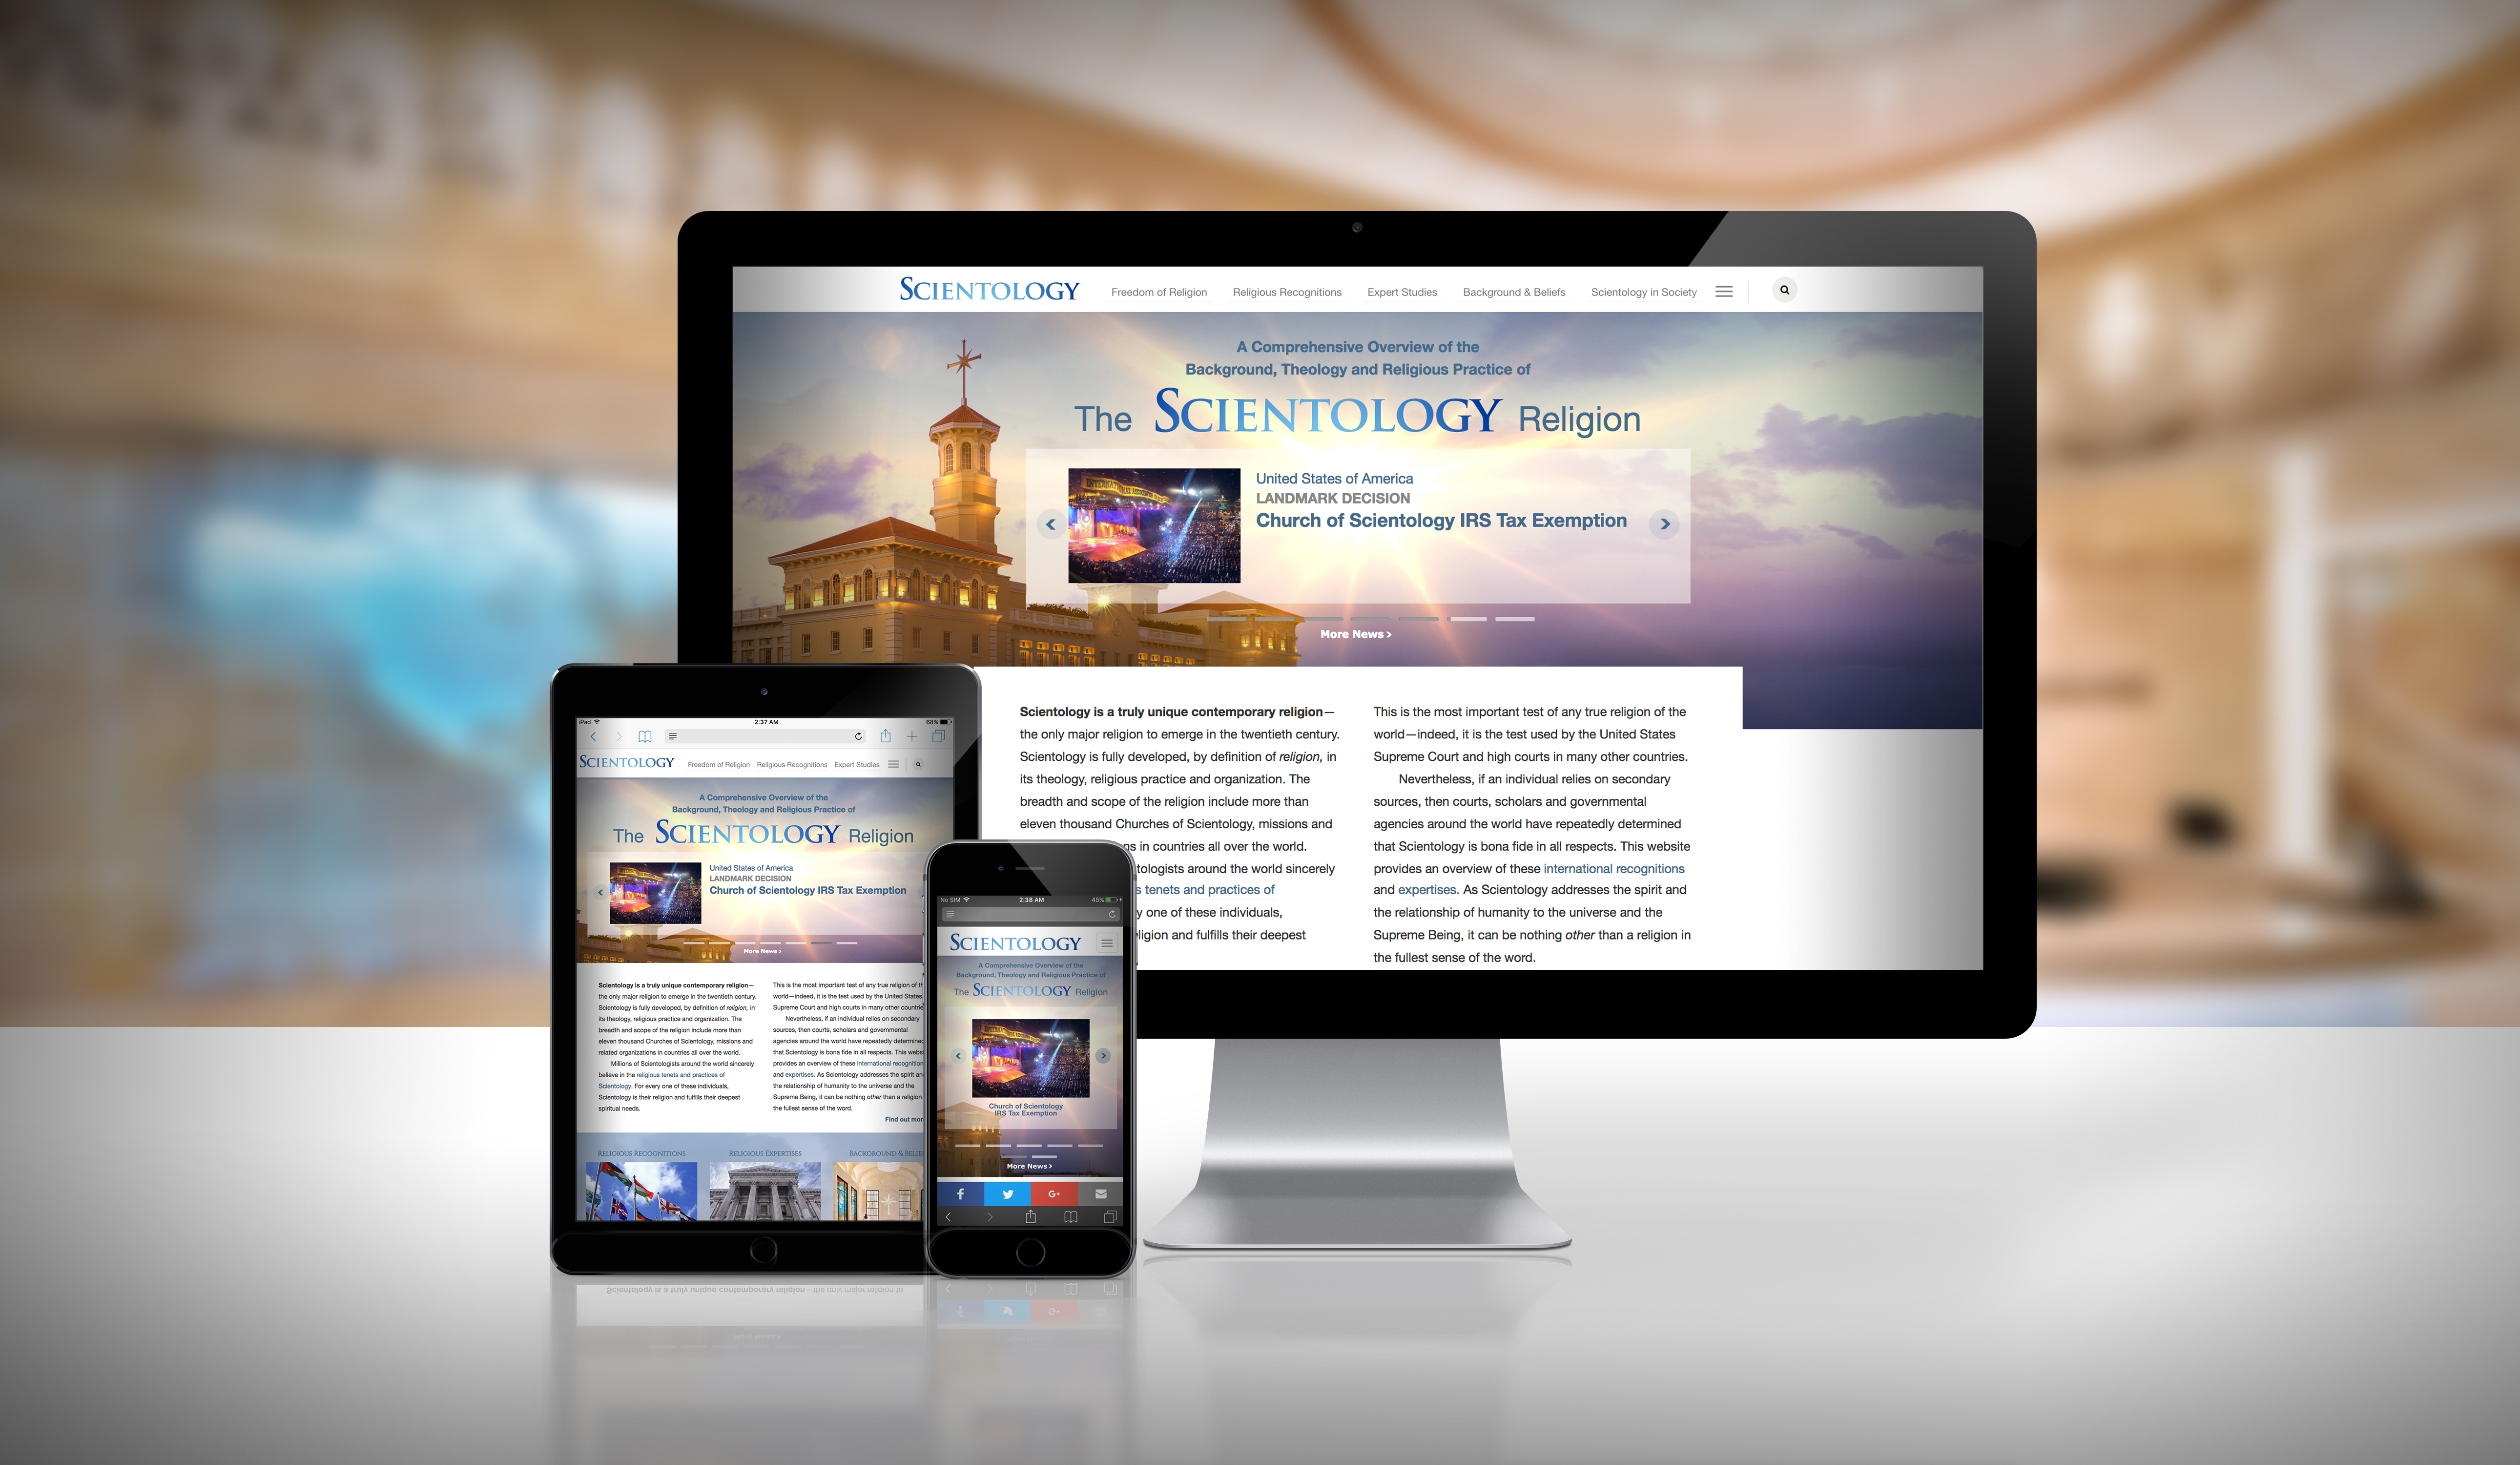 Freedom of Religion Defined in Landmark New Website from the Church of Scientology